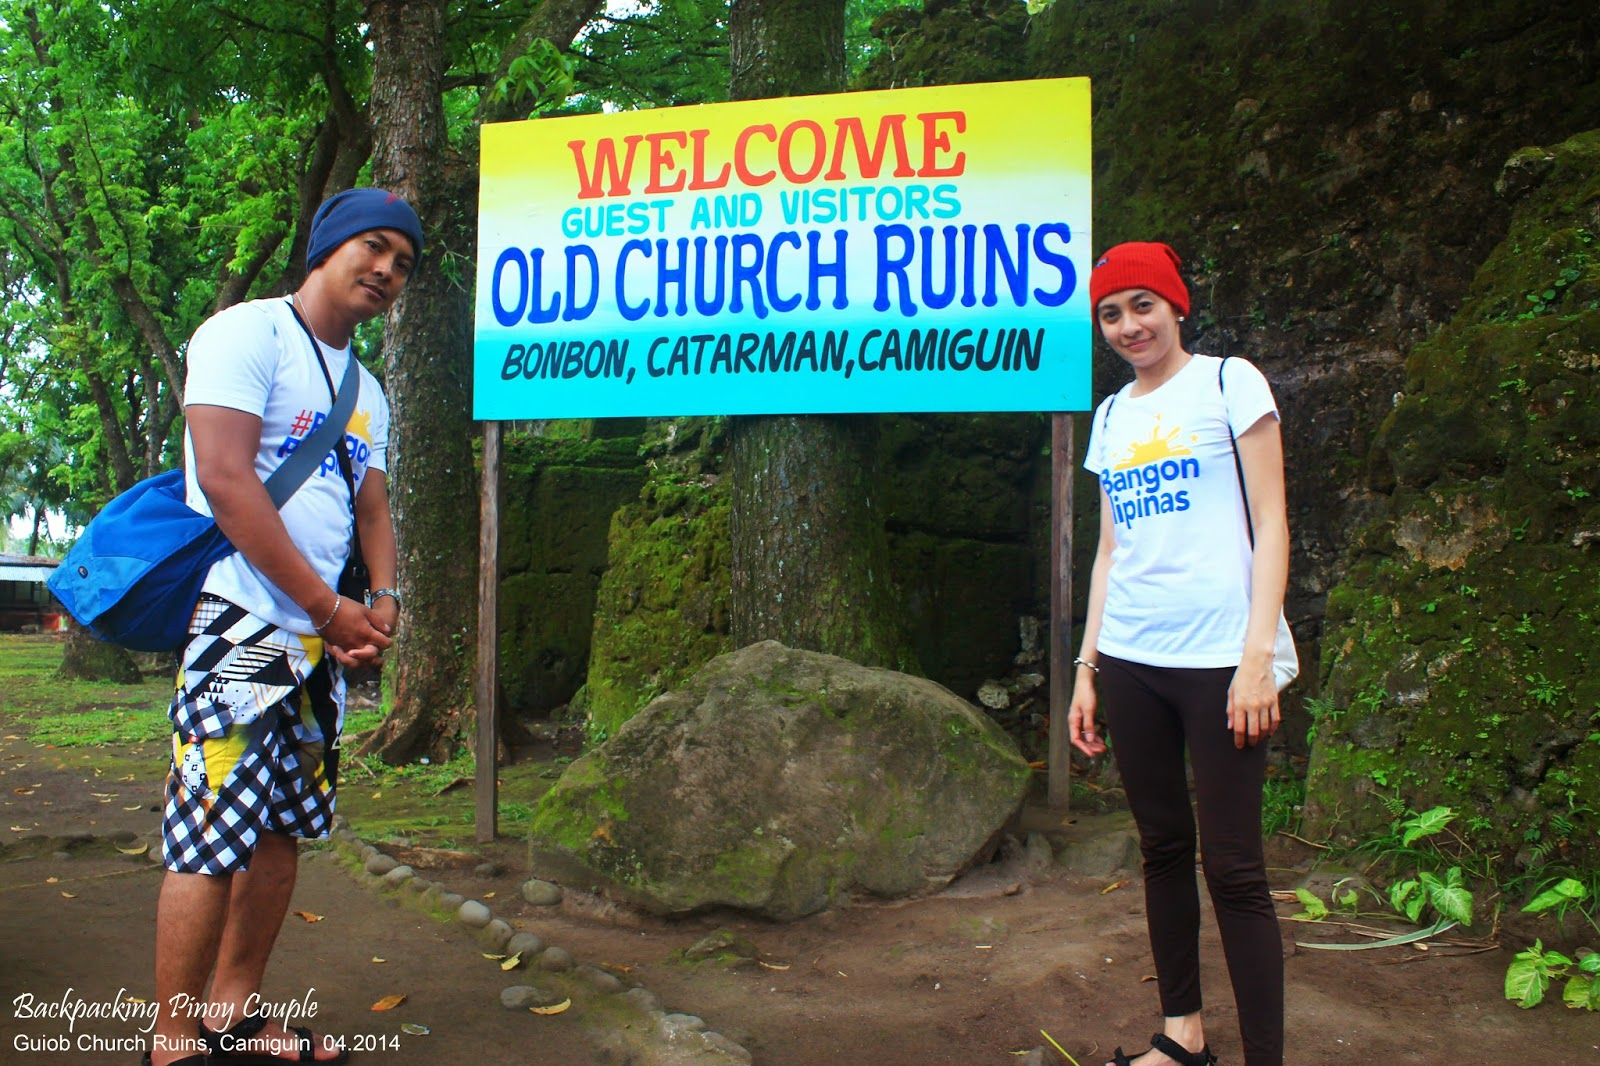 Backpacking Pinoy Couple, Backpacking Philippines, Northern Mindanao, Philippine travel, Camiguin, How to go to Camiguin, Guiob Church Ruins, Old Church Ruins, San Roque Church Ruins, Old Catarman, what to do in camiguin, where to go in camiguin